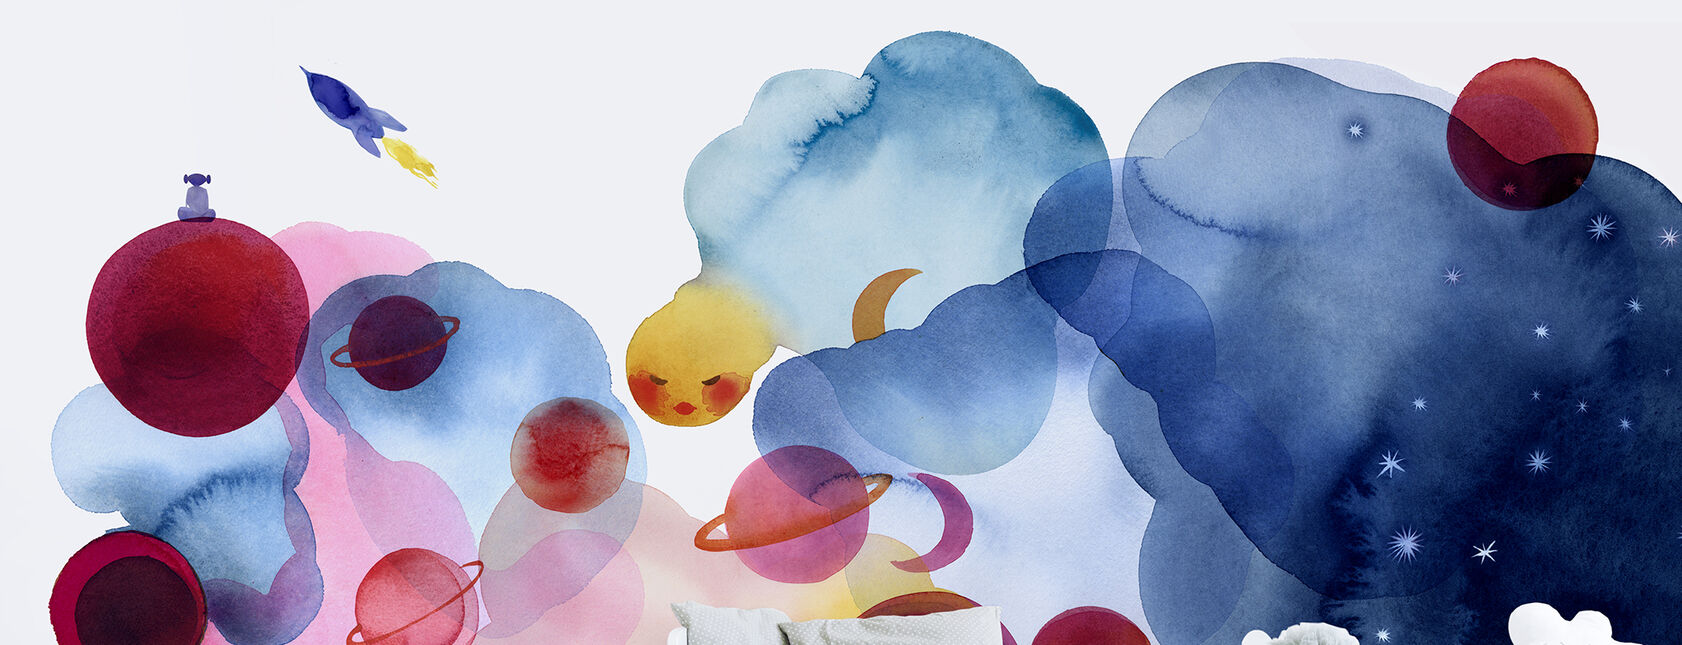 Stina Wirsen - Watercolors